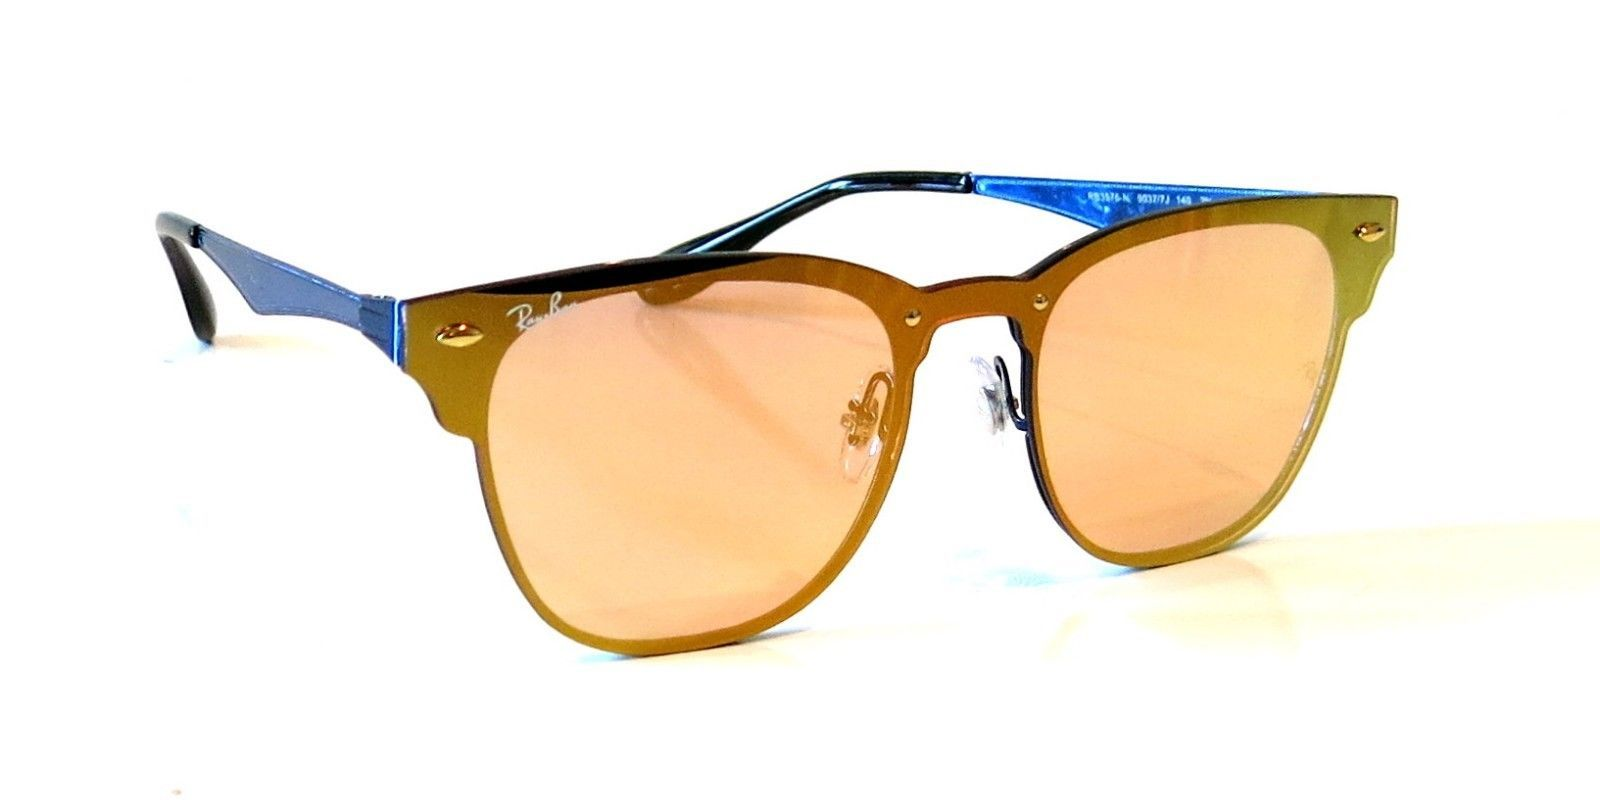 fef2ebbff97 Rayban Blaze Clubmaster sunglasses RB3576N and 50 similar items. S l1600